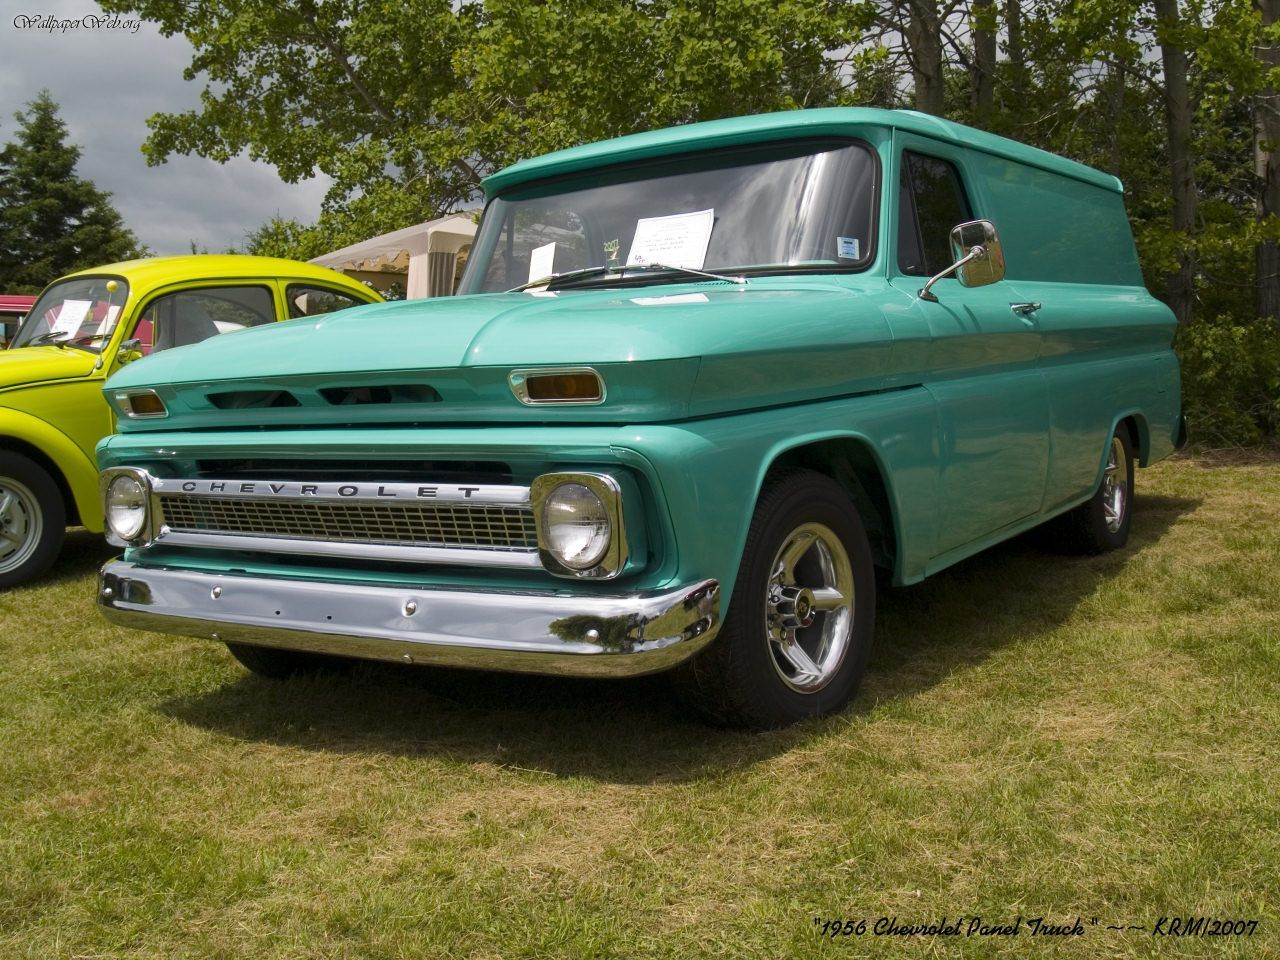 Truck 1965 chevrolet truck : 1965 chevy truck | View 1965 Chevrolet Panel Truck in full screen ...